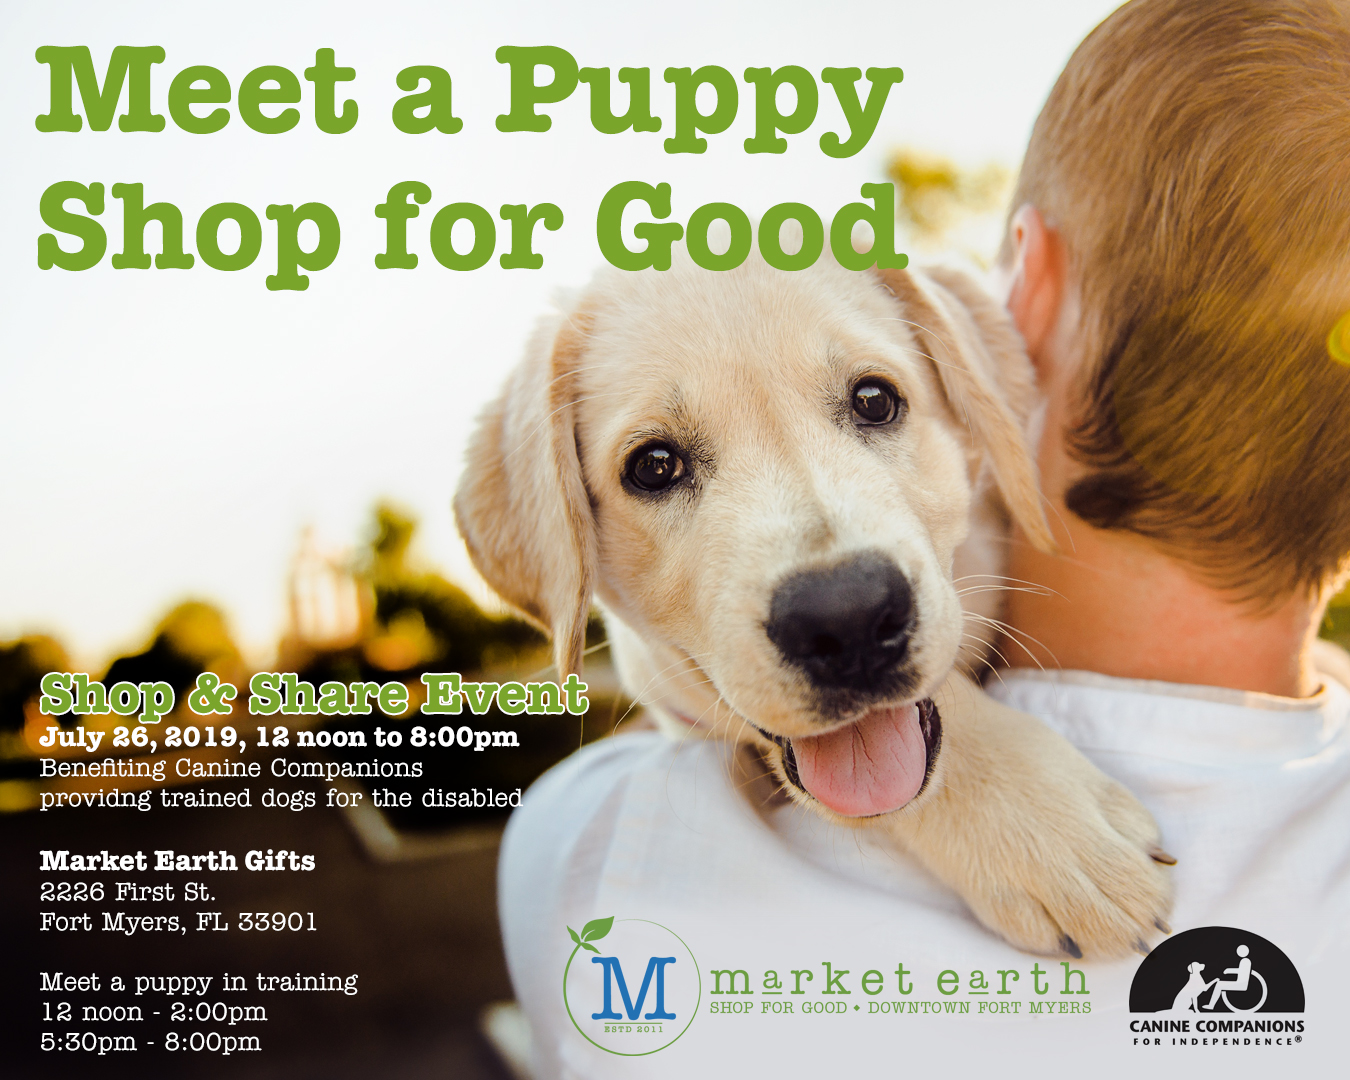 Market Earth Gift Shop to Host Shop  Share Event Benefiting Canine Companions for Independence July 26